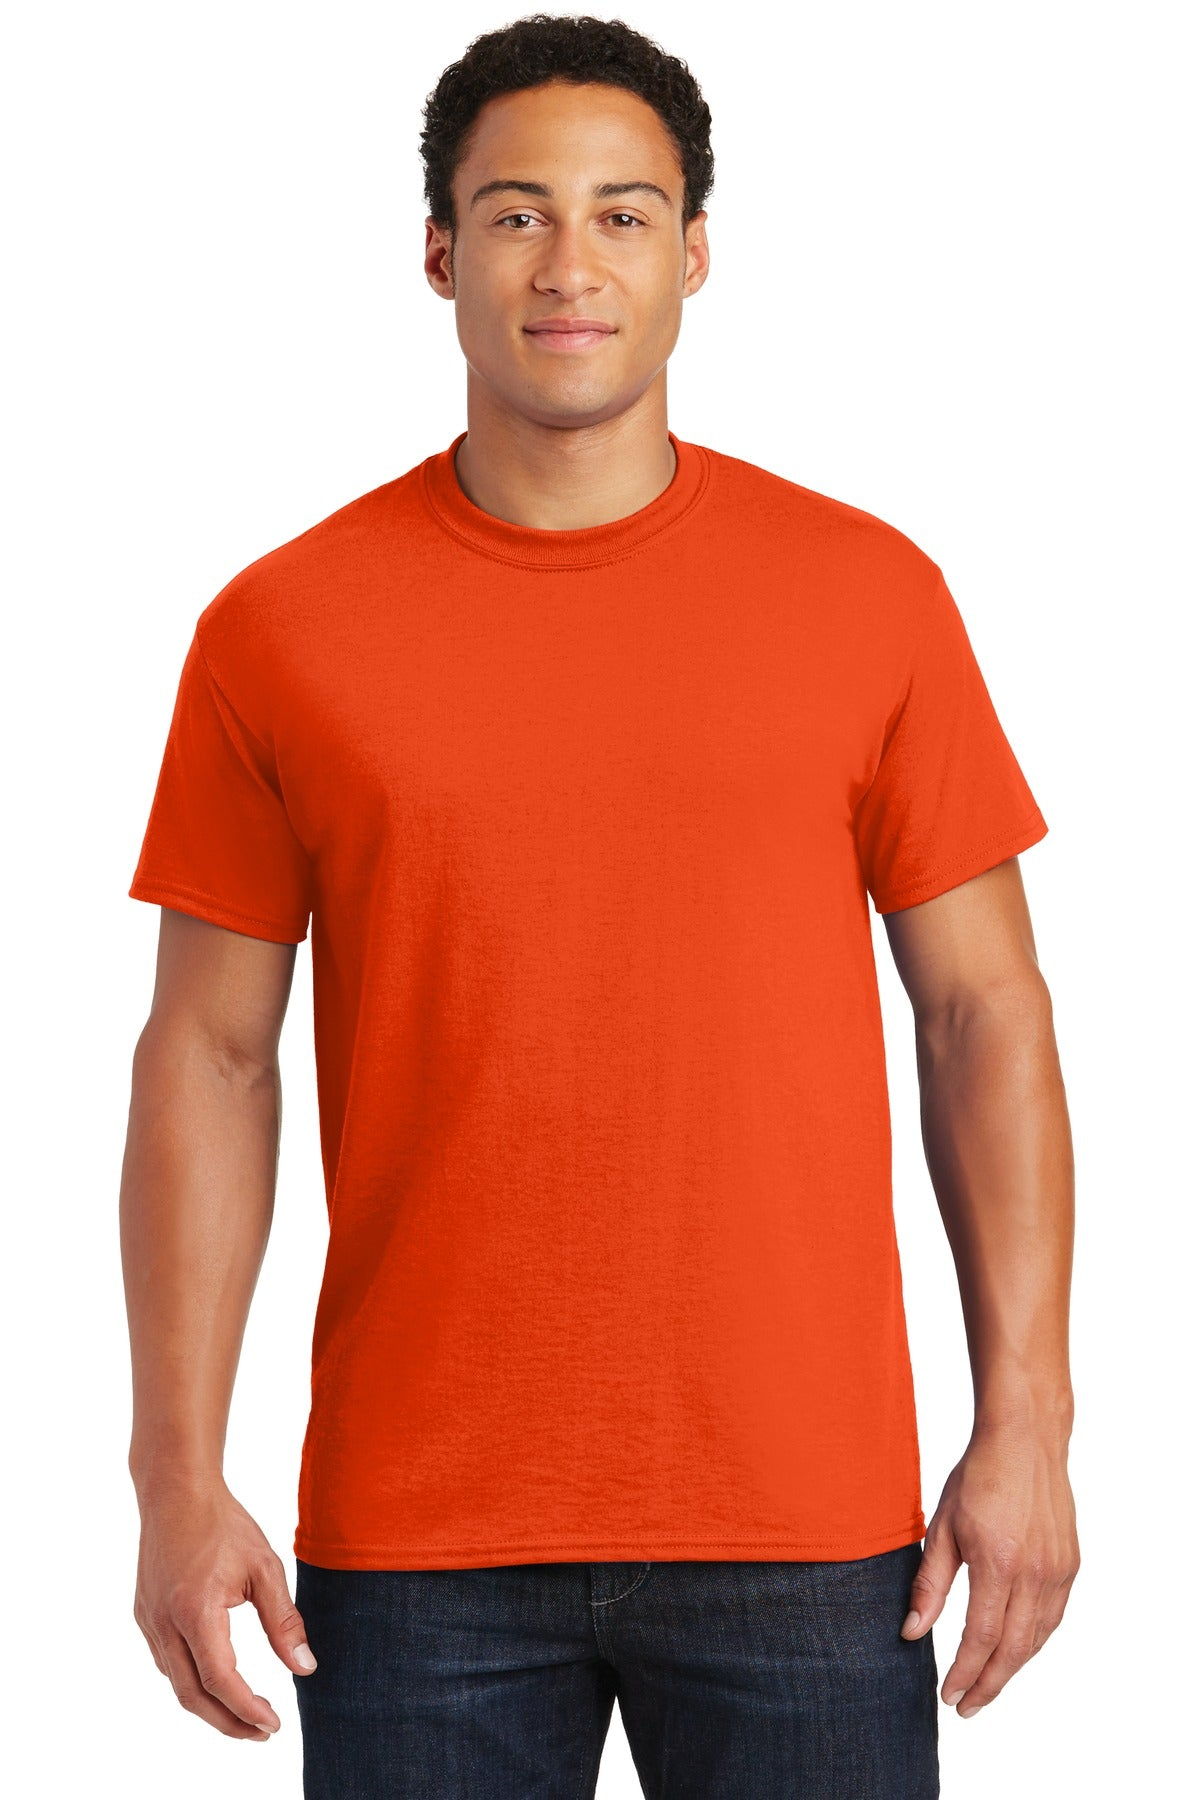 Orange Gildan DryBlend 50 Cotton/50 Poly T-Shirt.